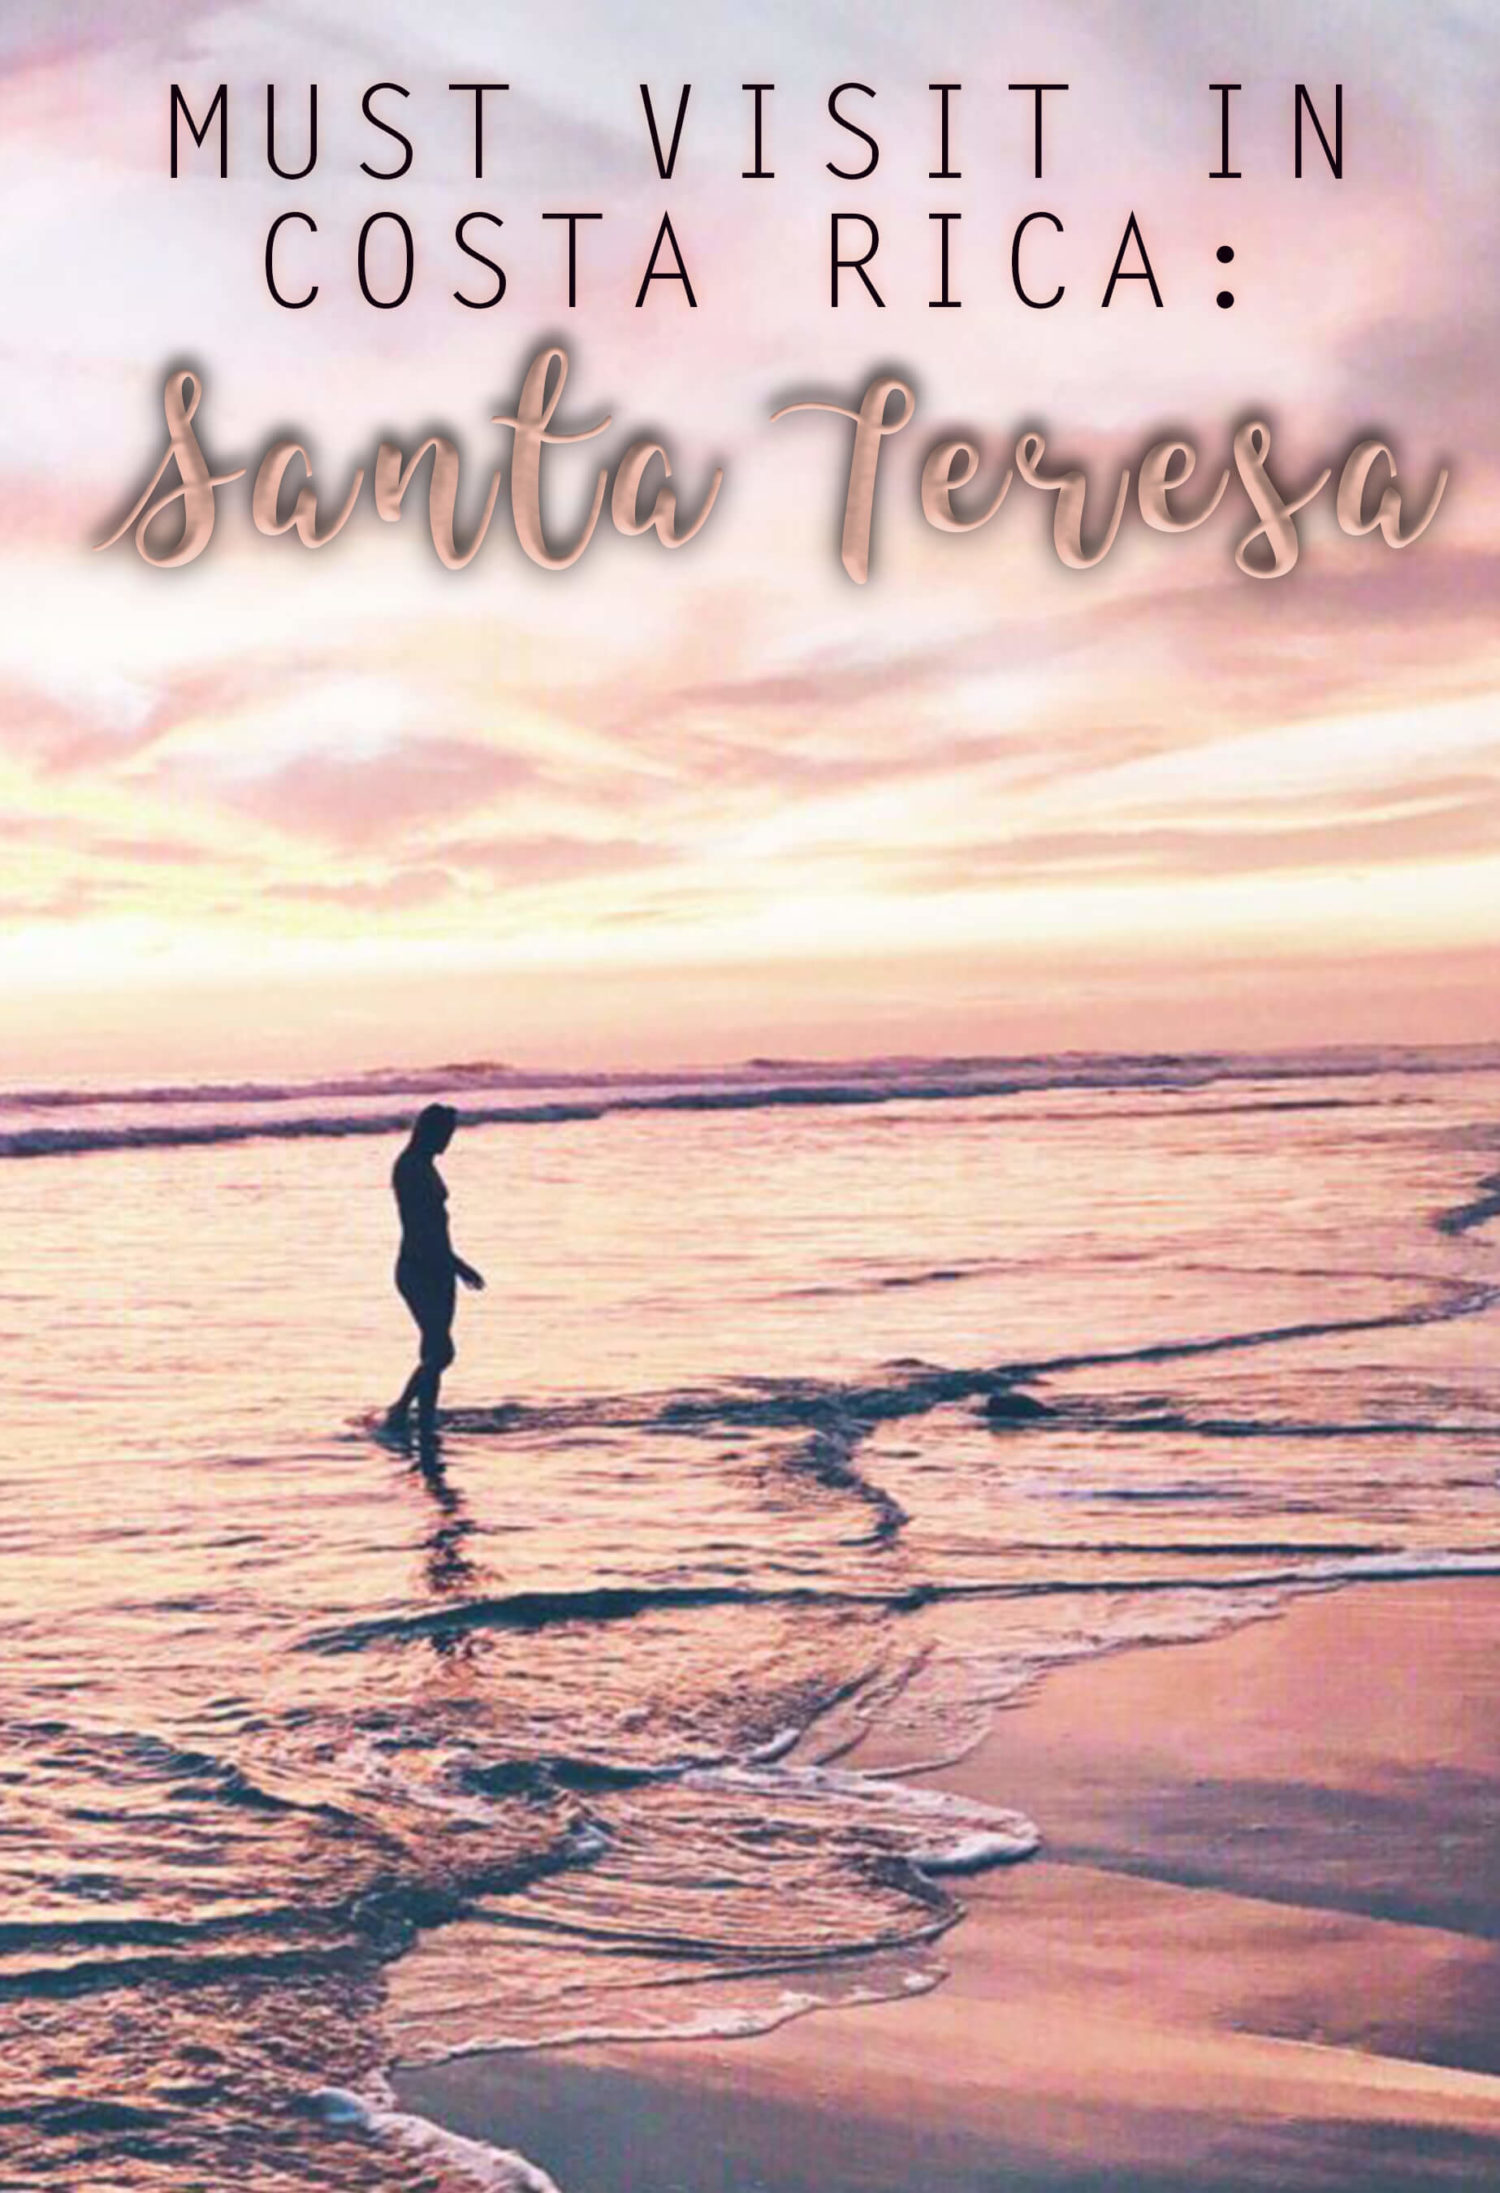 santa teresa personals Maria trinidad matus, a 25-year-old singer whose first album had just been released, was murdered on the santa teresa de cobano beach.